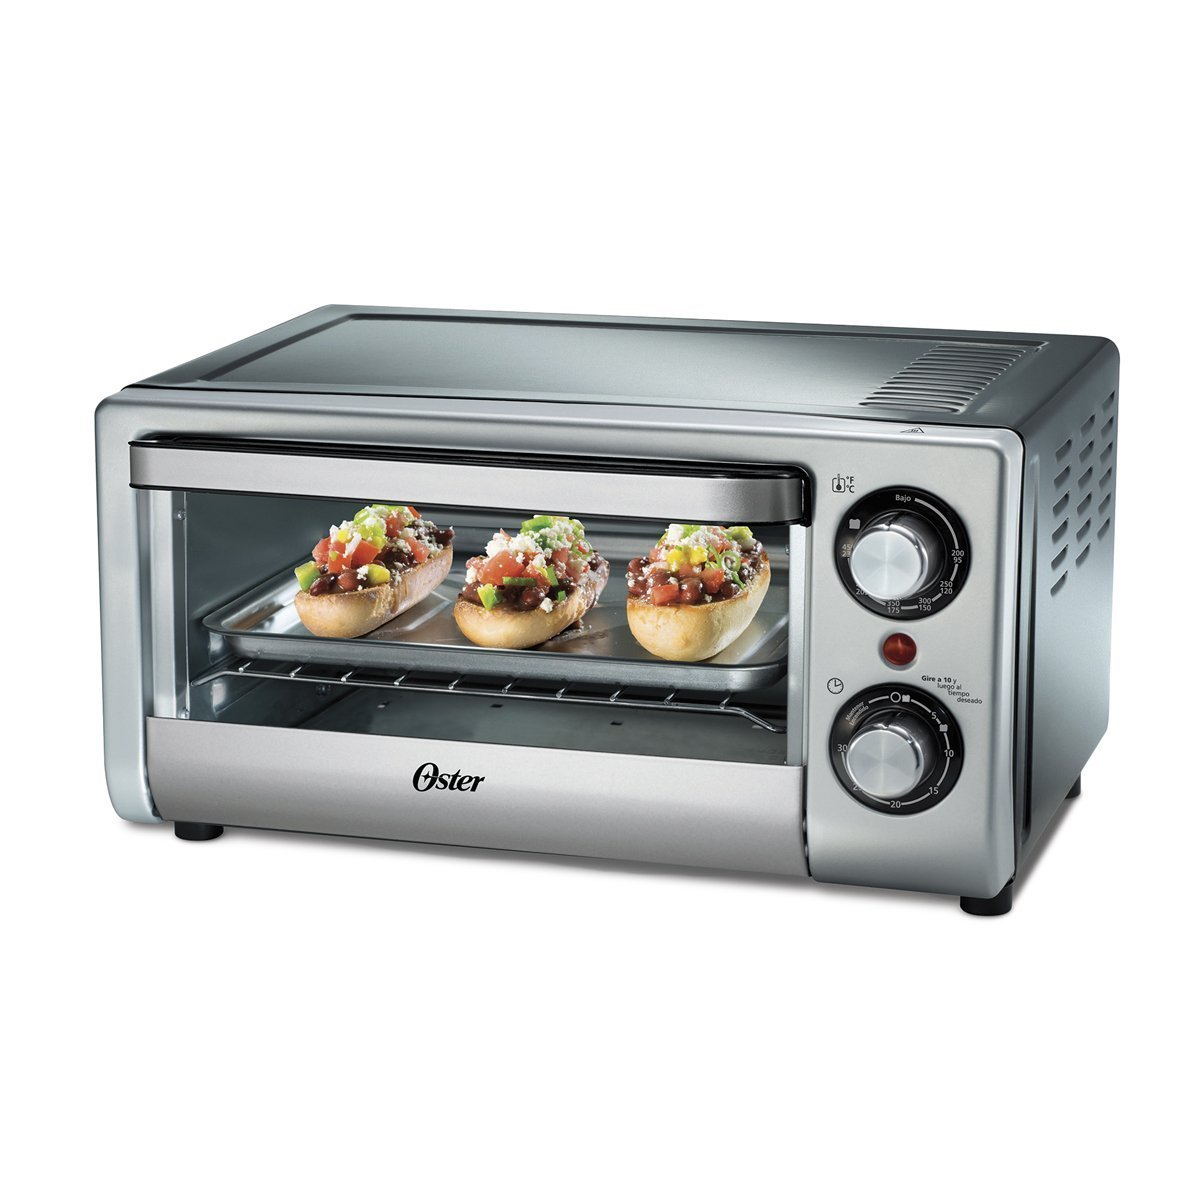 Oster TSSTTV10LTB 4 Slice Toaster Oven for 220 240 volt Will not work in USA